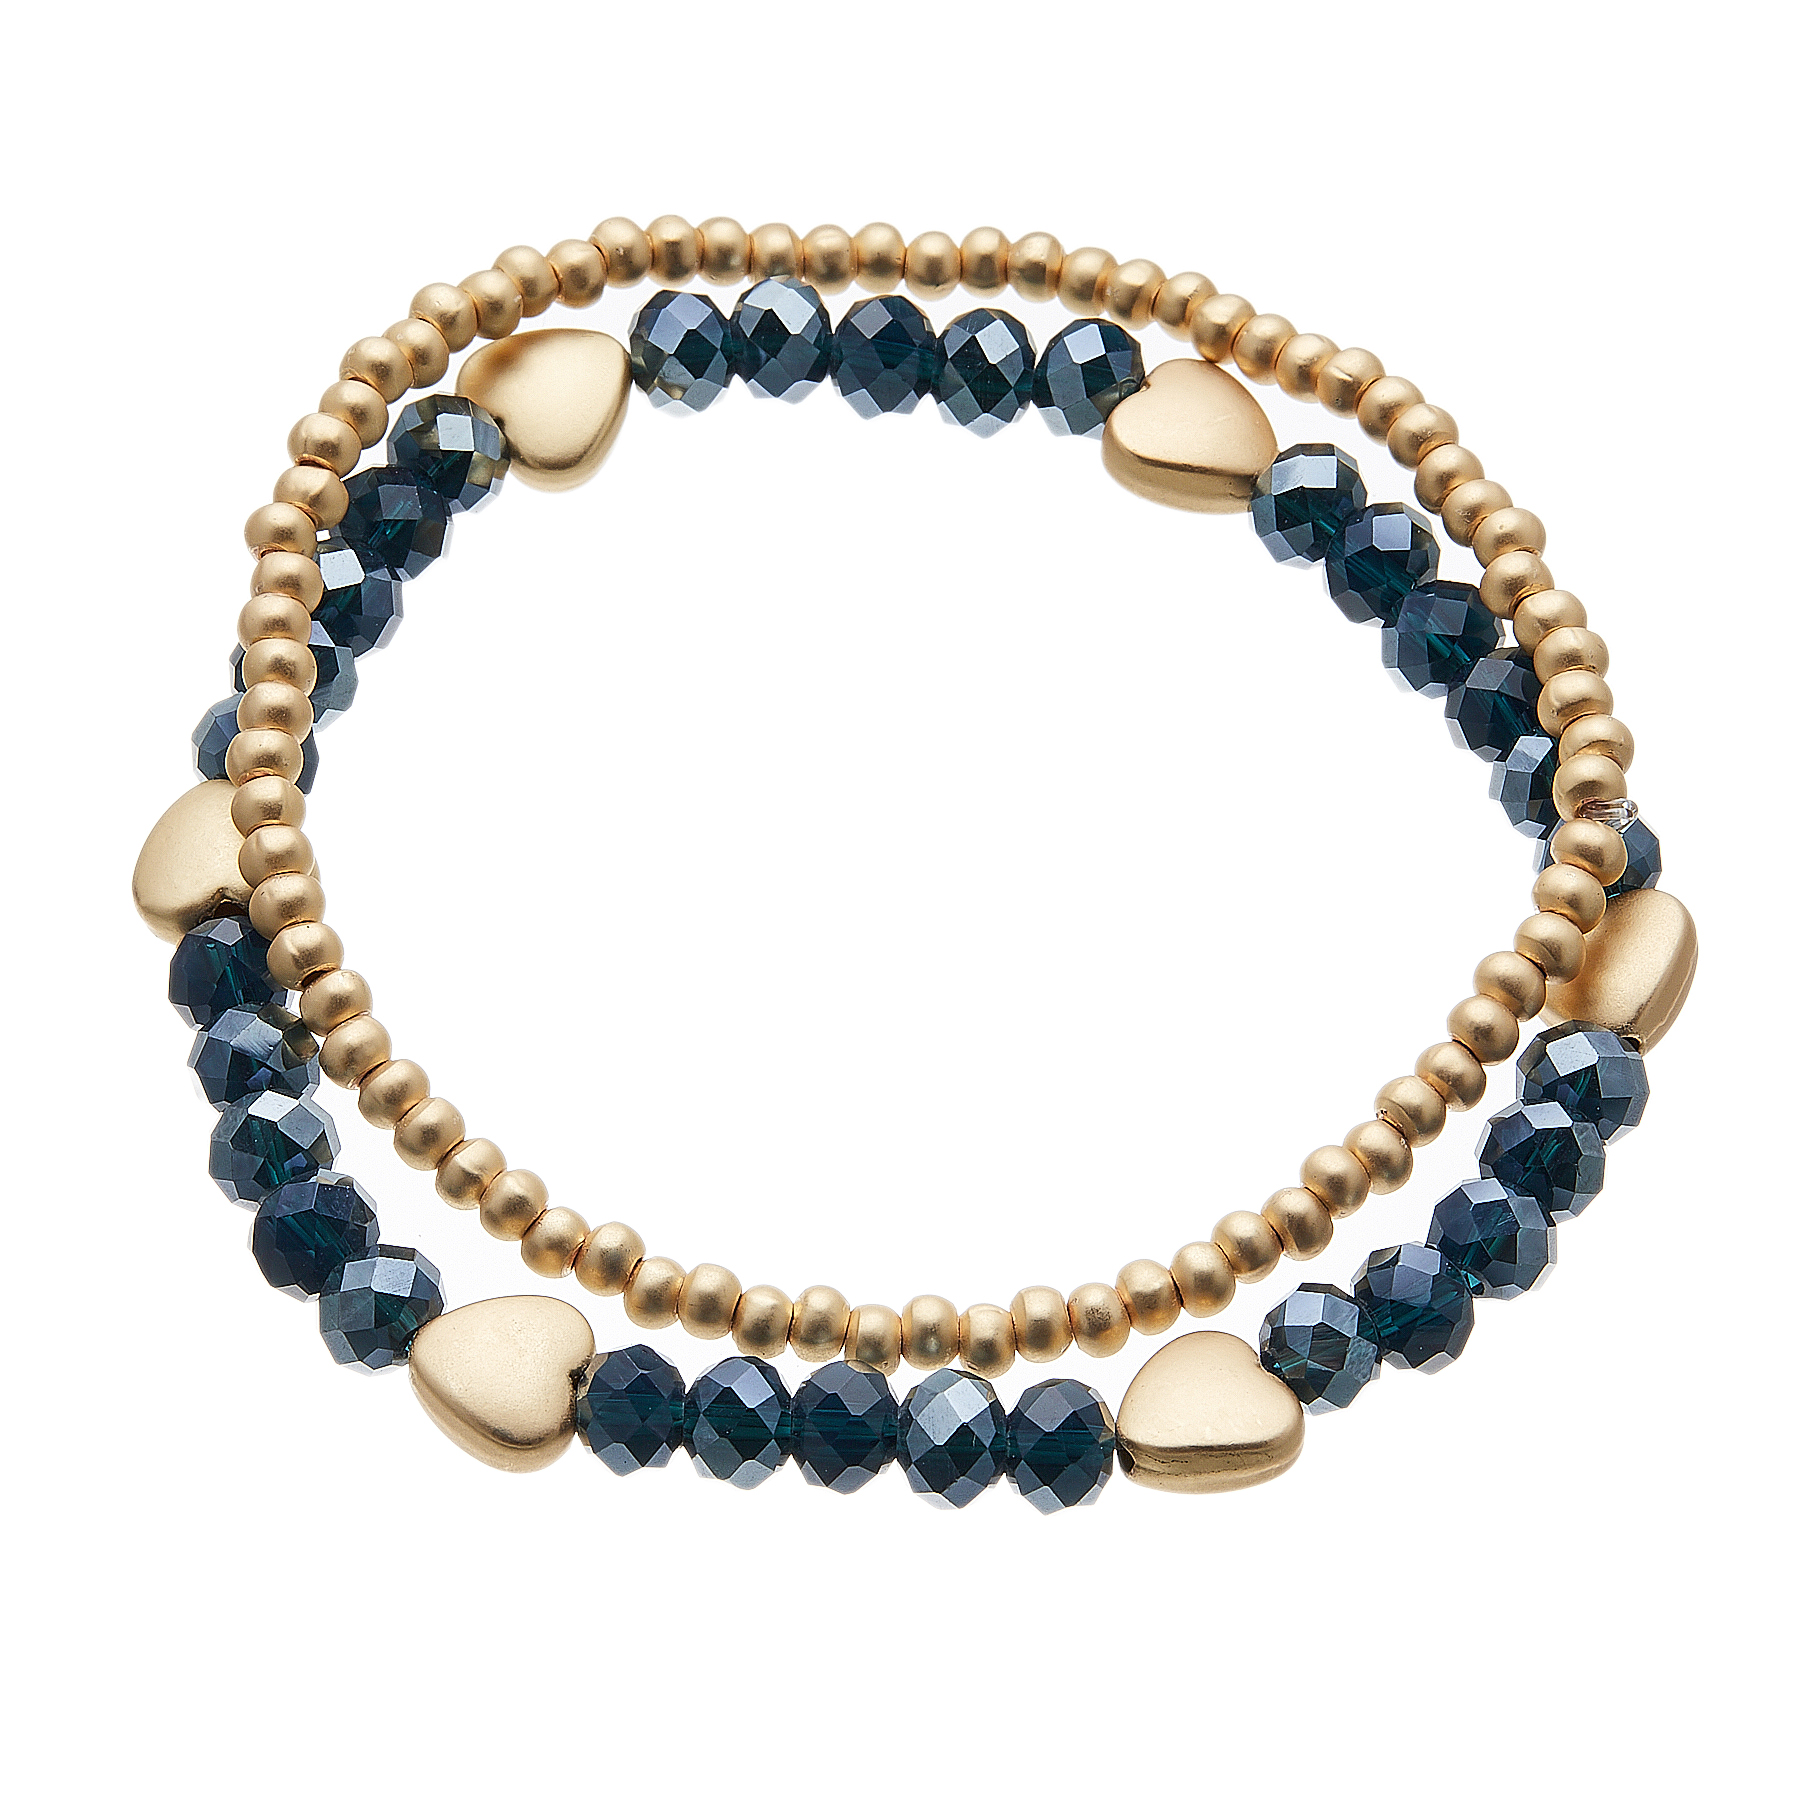 Set of two Bracelets - matt gold hearts and navy blue beads - Yori B24-21